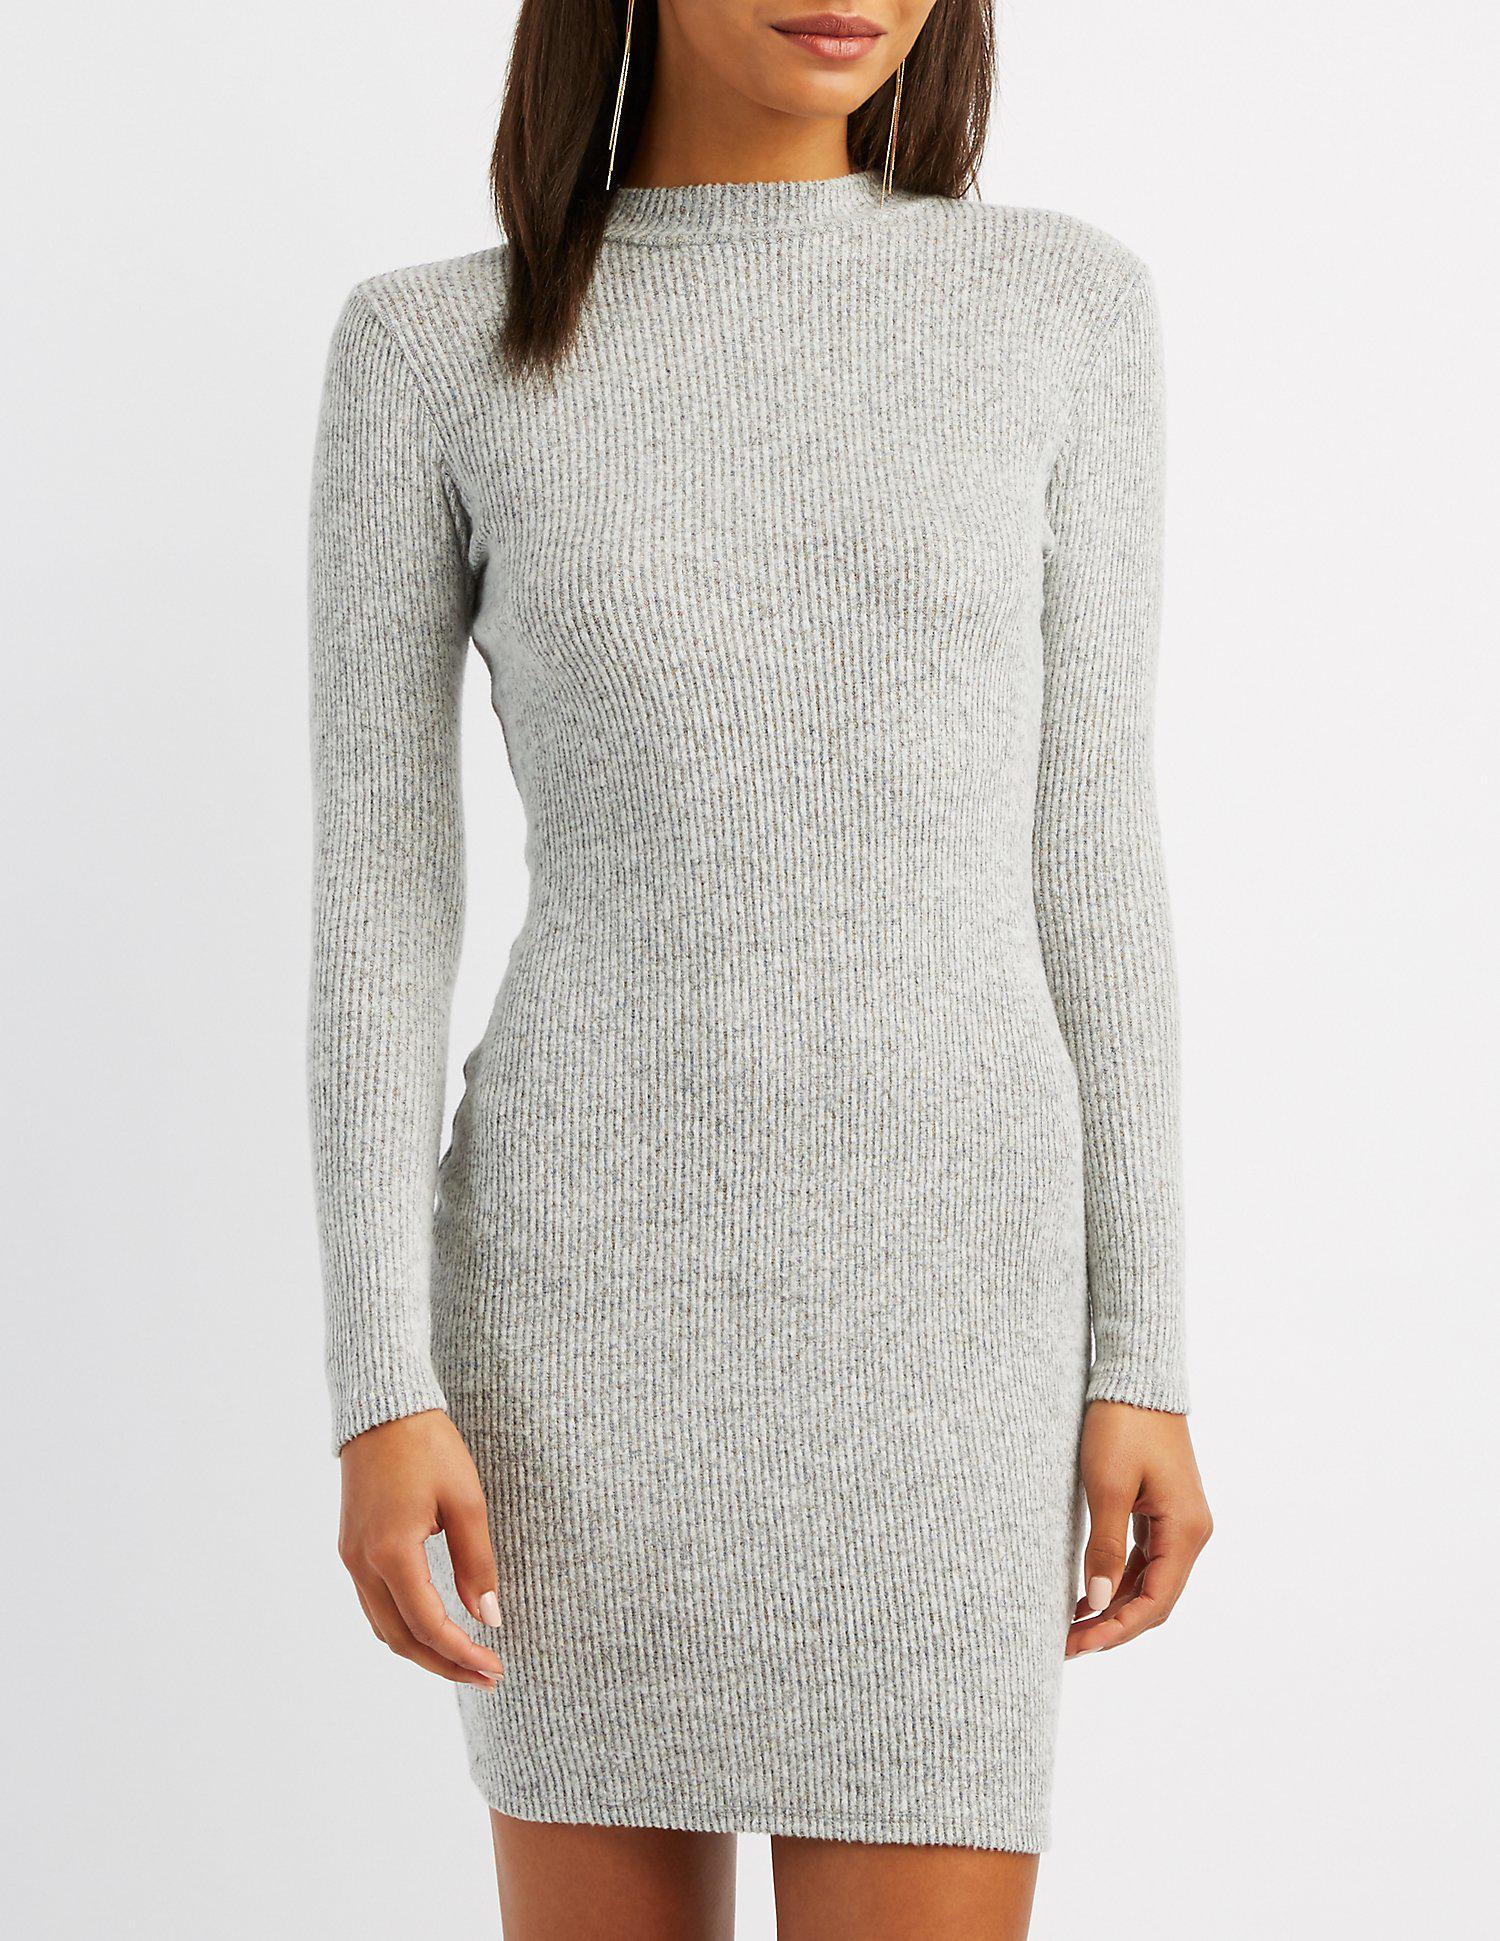 c6fbbb54959 Lyst - Charlotte Russe Ribbed Knit Bodycon Sweater Dress in Gray